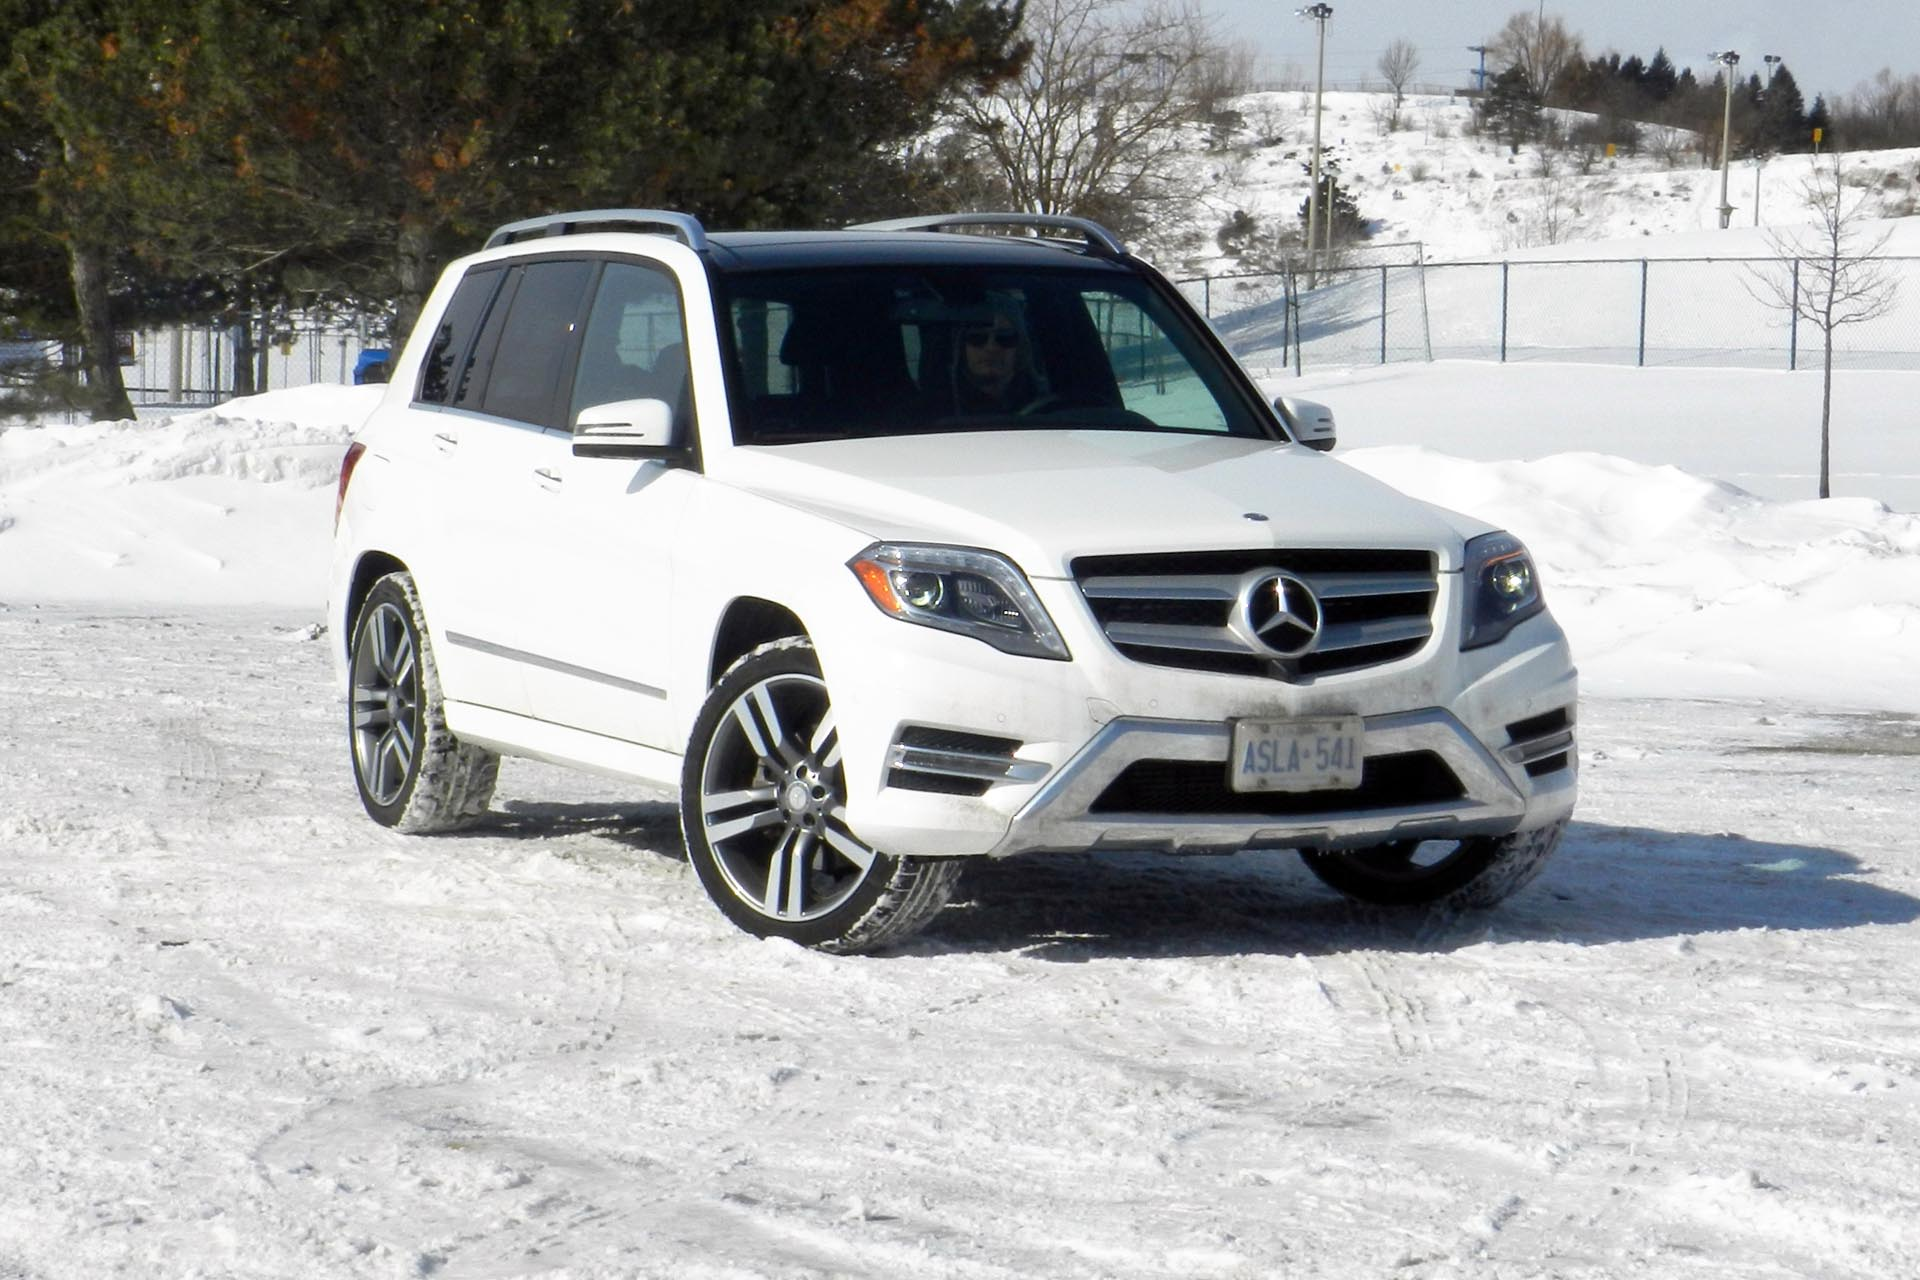 In more Mercedes news, the GLK-Class proved it still has the chops, pulling in 1,065 sales so far this year and earning a place in the top five. Both the 2.3L turbo diesel and aggressive shape help lots here. The GLK will be renamed the GLC come the end of the year to reflect its relative position. But I'd bet it will arrive as an all-new vehicle using the award-winning C-Class as its base.